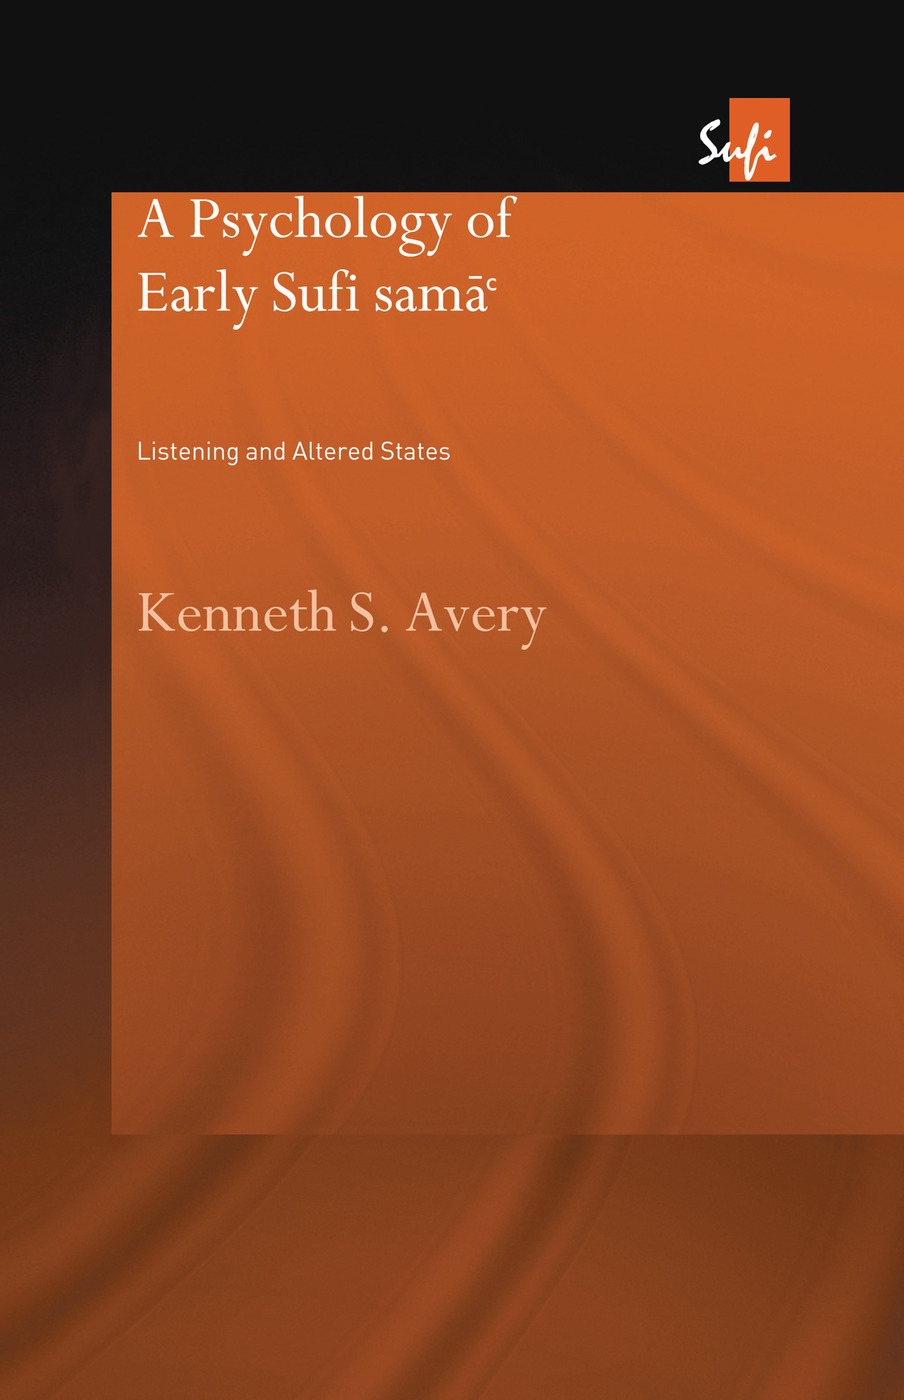 A Psychology of Early Sufi Samâ`: Listening and Altered States book cover